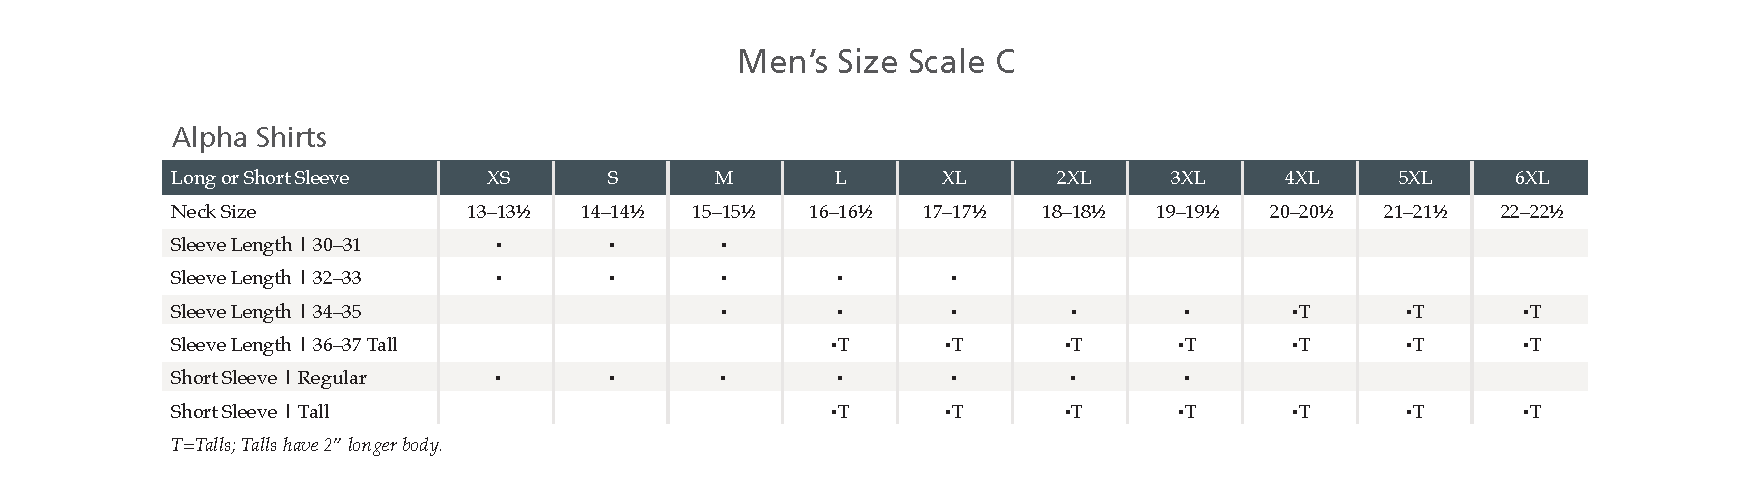 Size Scale C